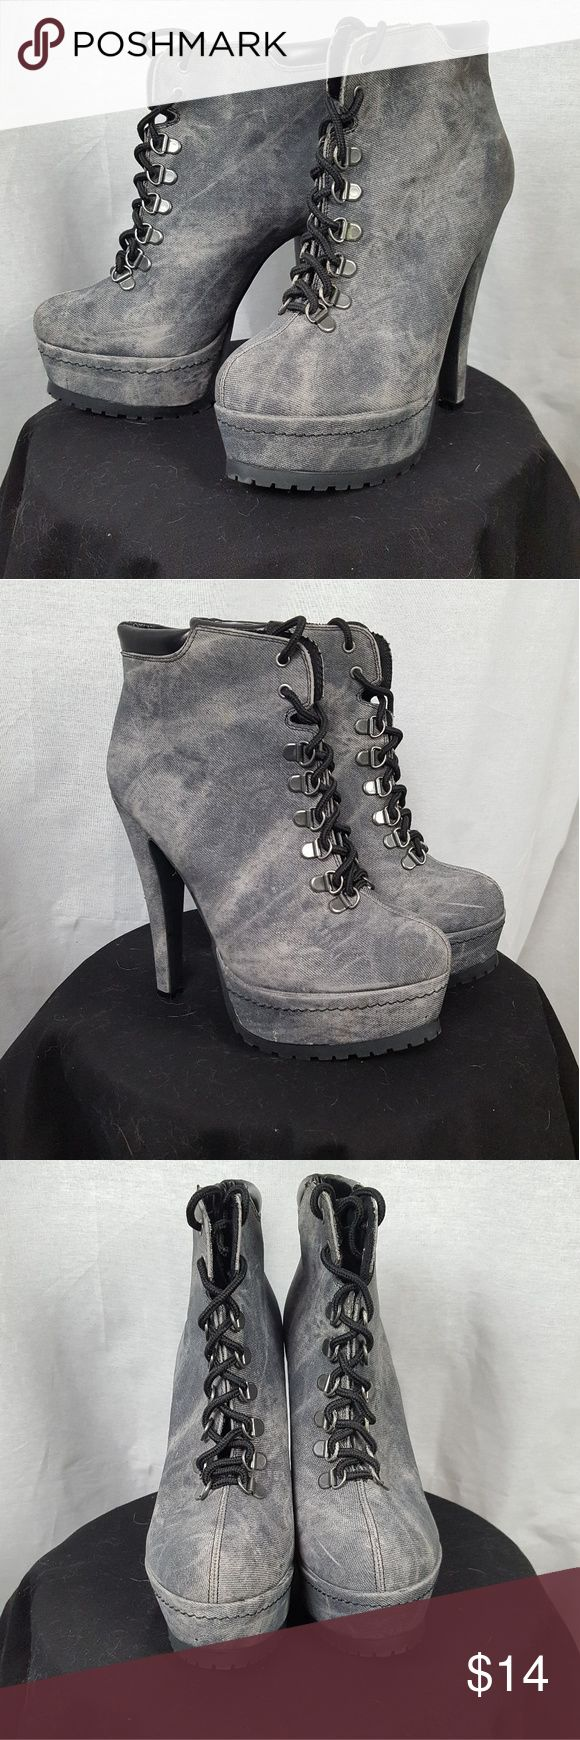 Xhilaration Grey High Heeled Boots These boots have a 4 1/2 inch heel and a slight glitter to them. They've been worn once, I bought them years ago when I thought I'd be wearing heels a lot more than I actually do.  The price is negotiable, feel free to make an offer to ask any questions! Xhilaration Shoes Heeled Boots